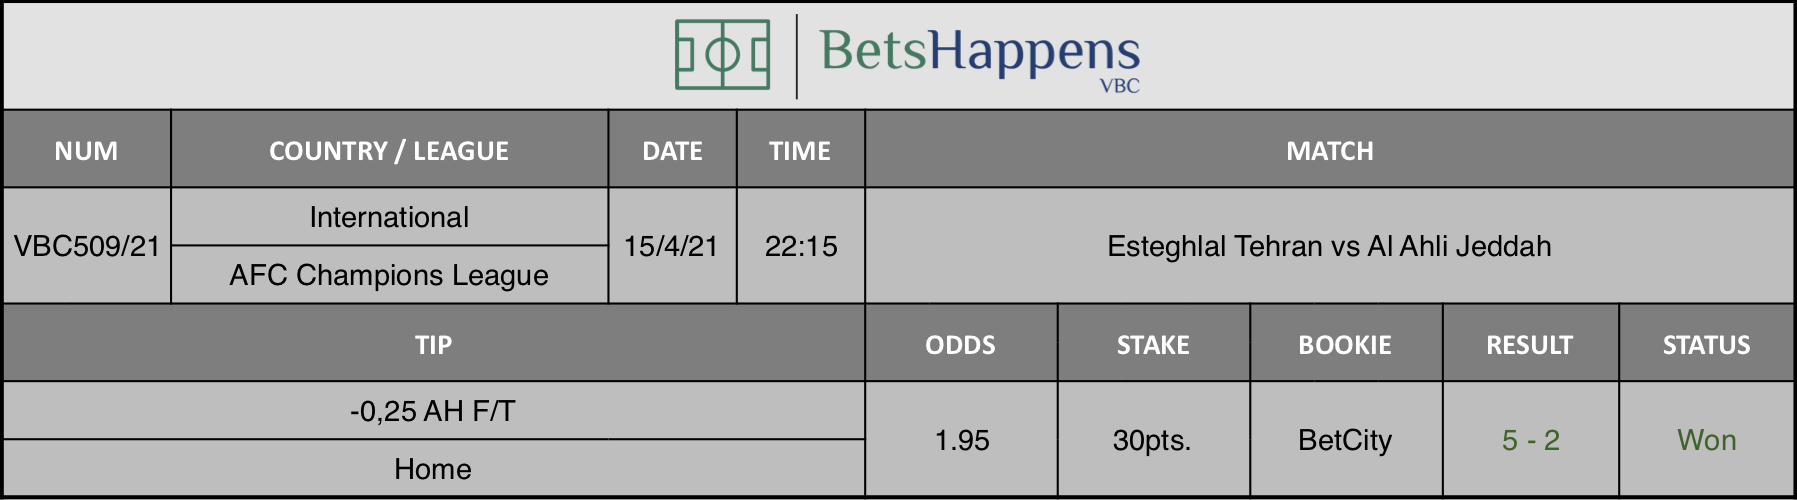 Results of our tip for the Esteghlal Tehran vs Al Ahli Jeddah match where -0,25 AH F/T Home is recommended.